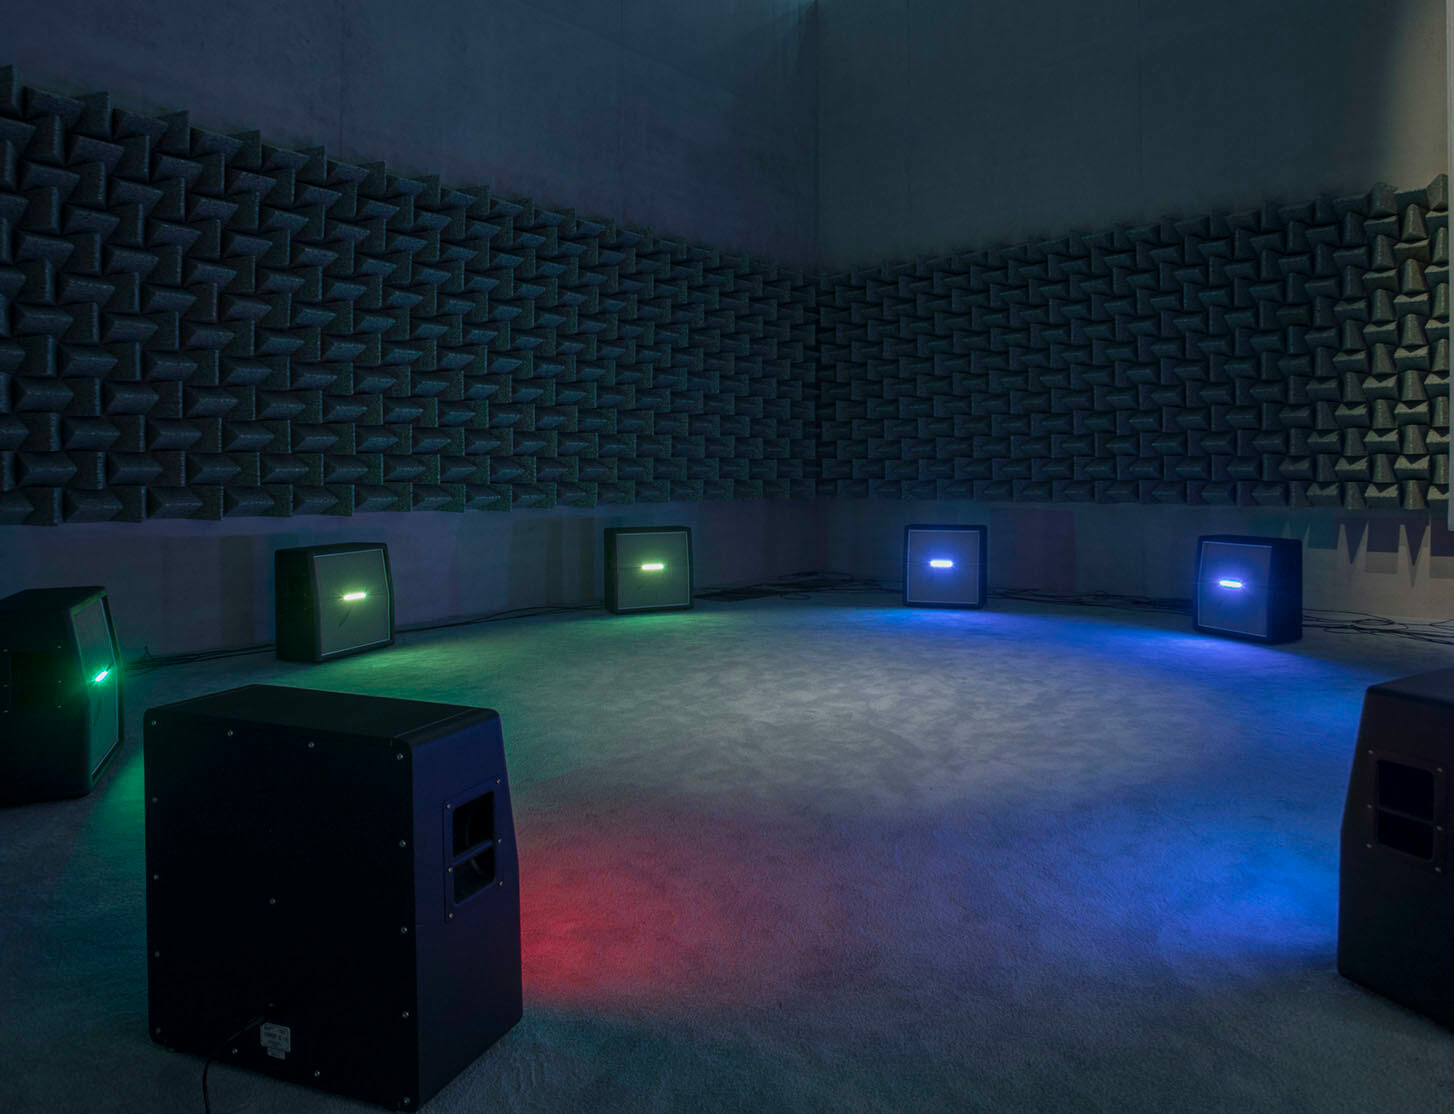 Haroon Mirza unveils new site-specific installation in San Francisco